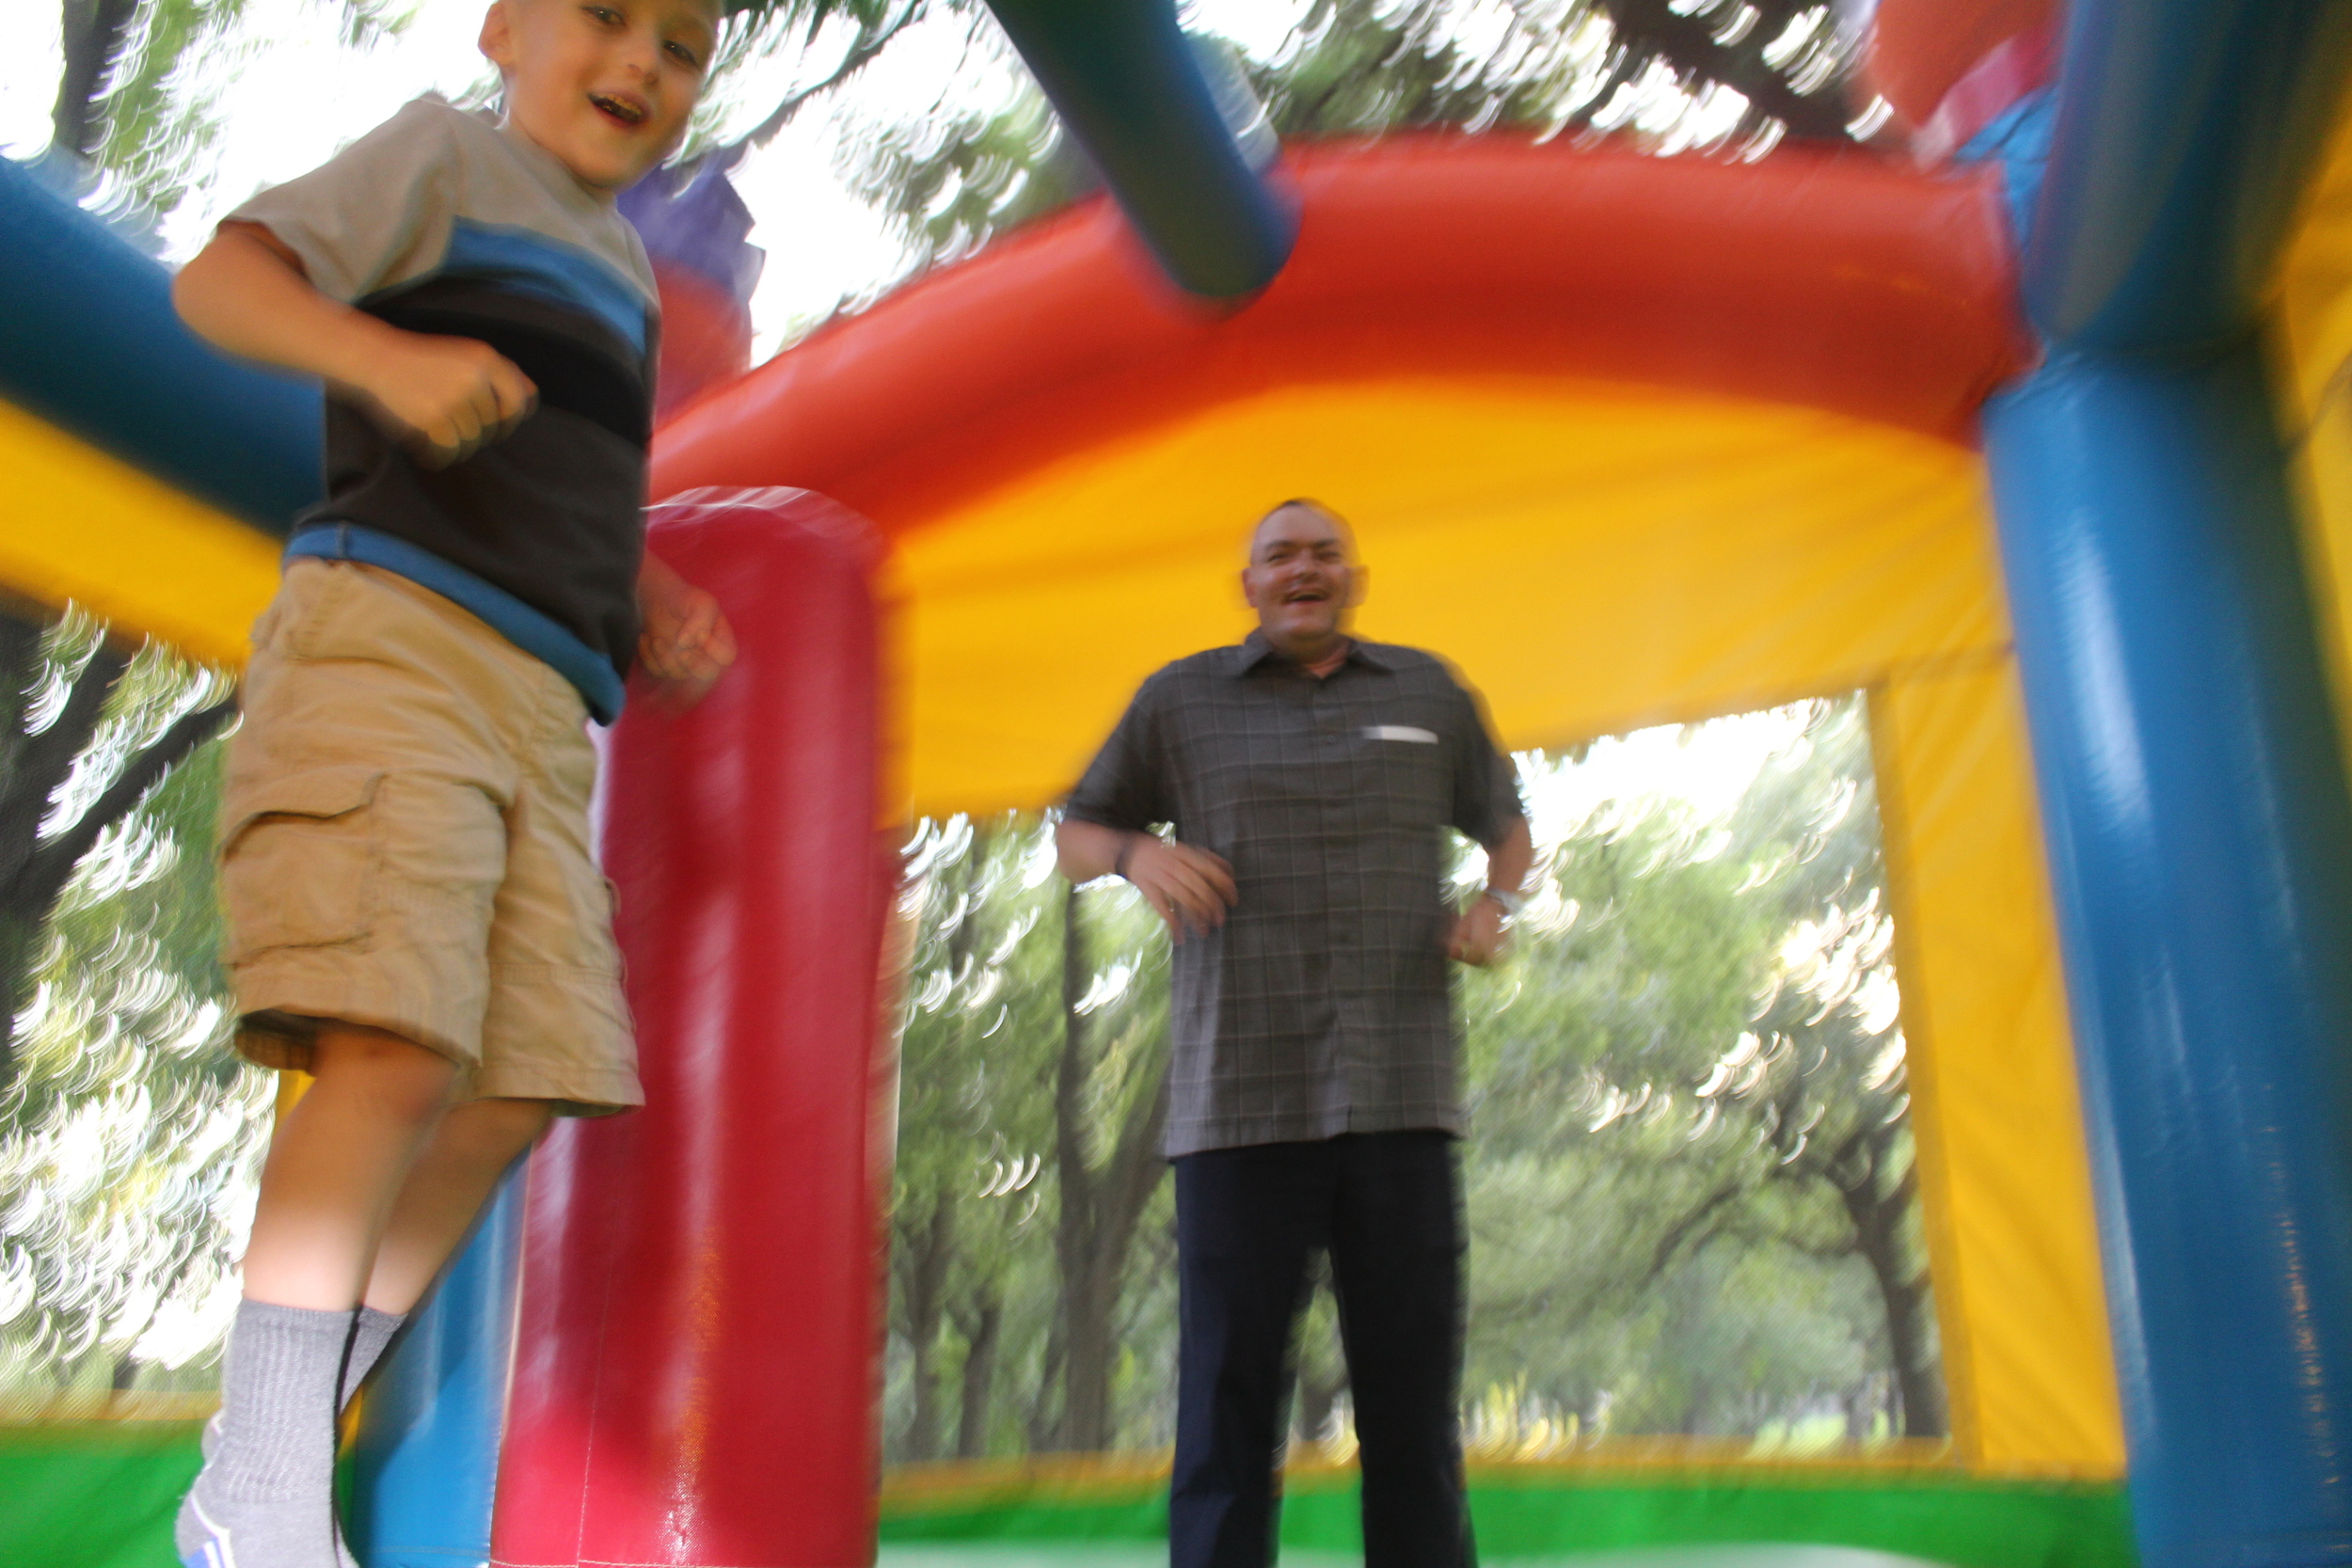 Jeffrey in the Bouncy House